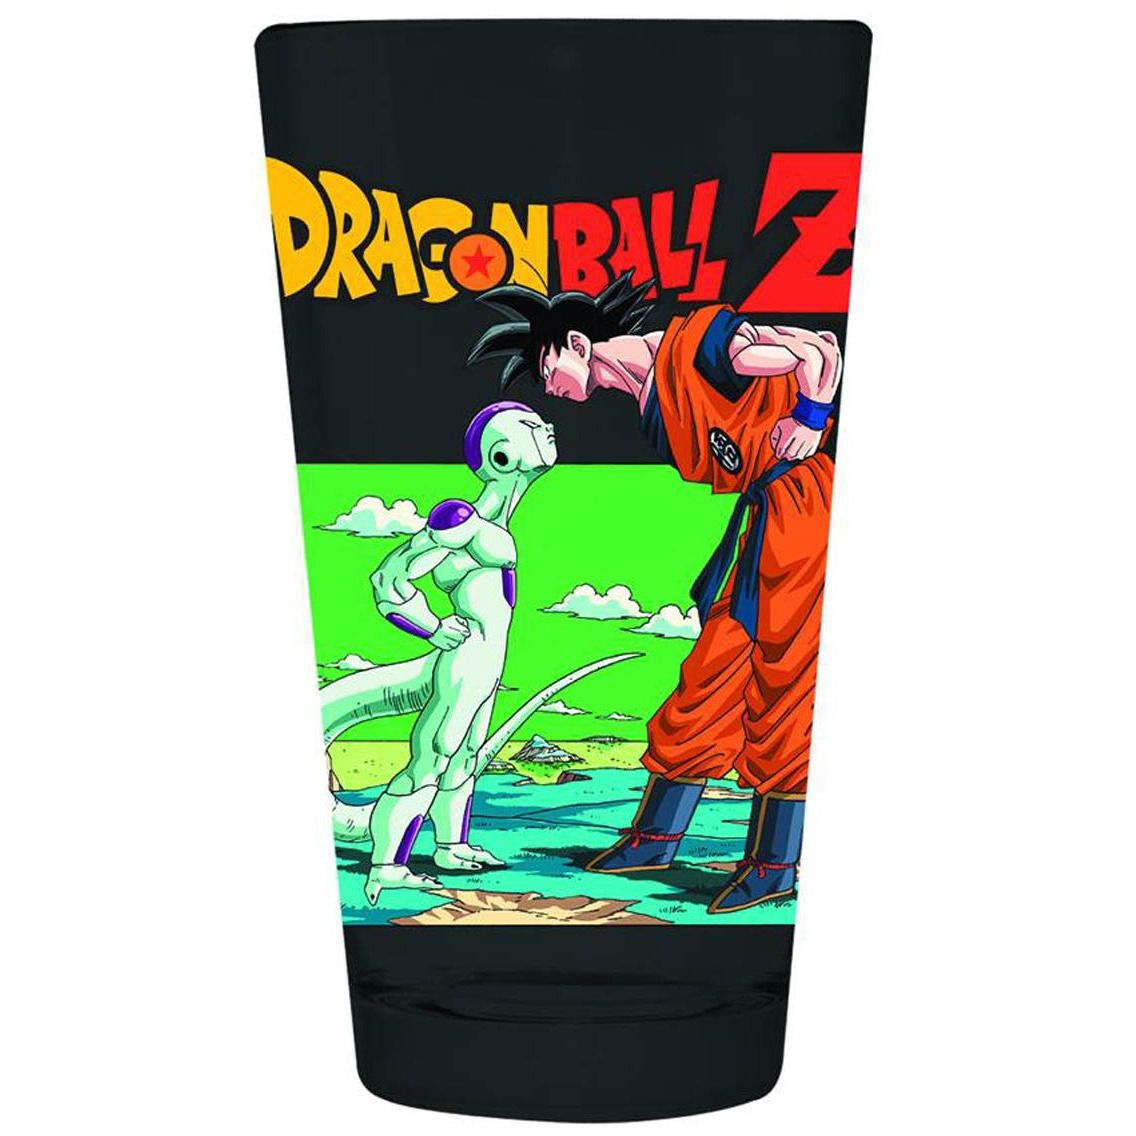 Dragonball Z Frieza & Goku Pint Glass Uncanny!